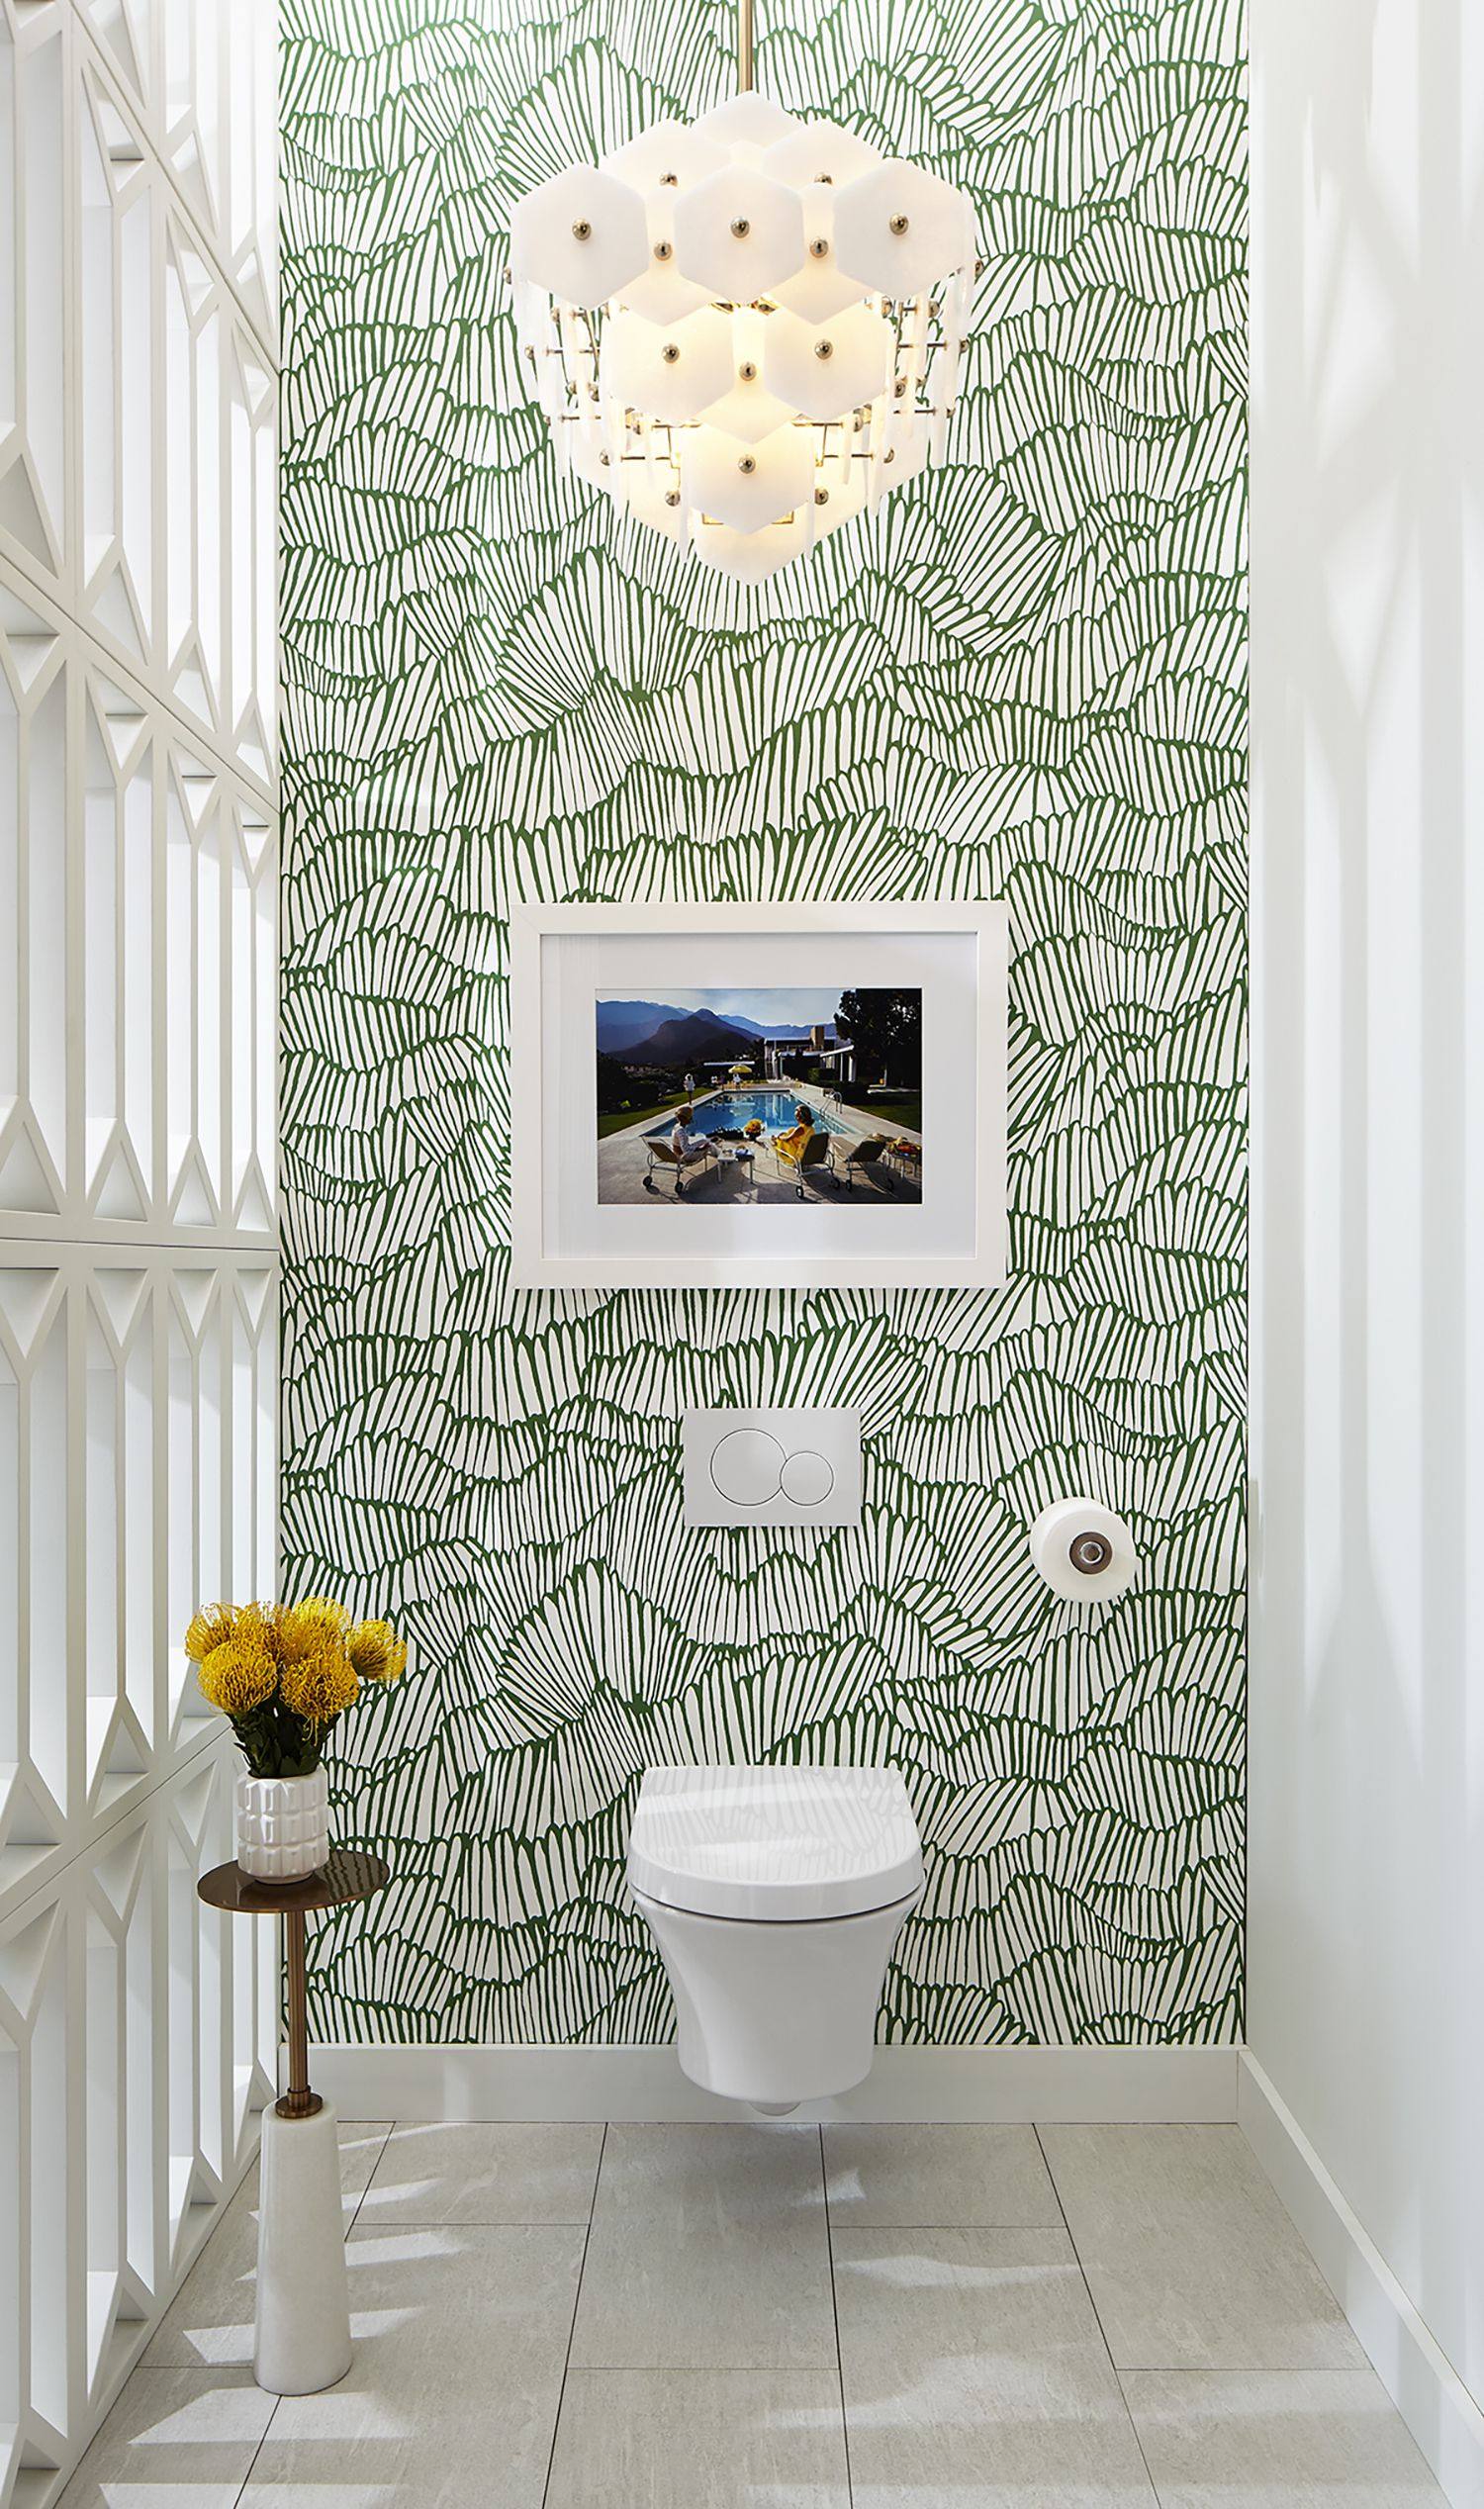 In their DXVDesignPanel vignette Pulp Design Studios opted to use the Seagram Wall Hung Toilet as a gallery piece creating a segregated space using